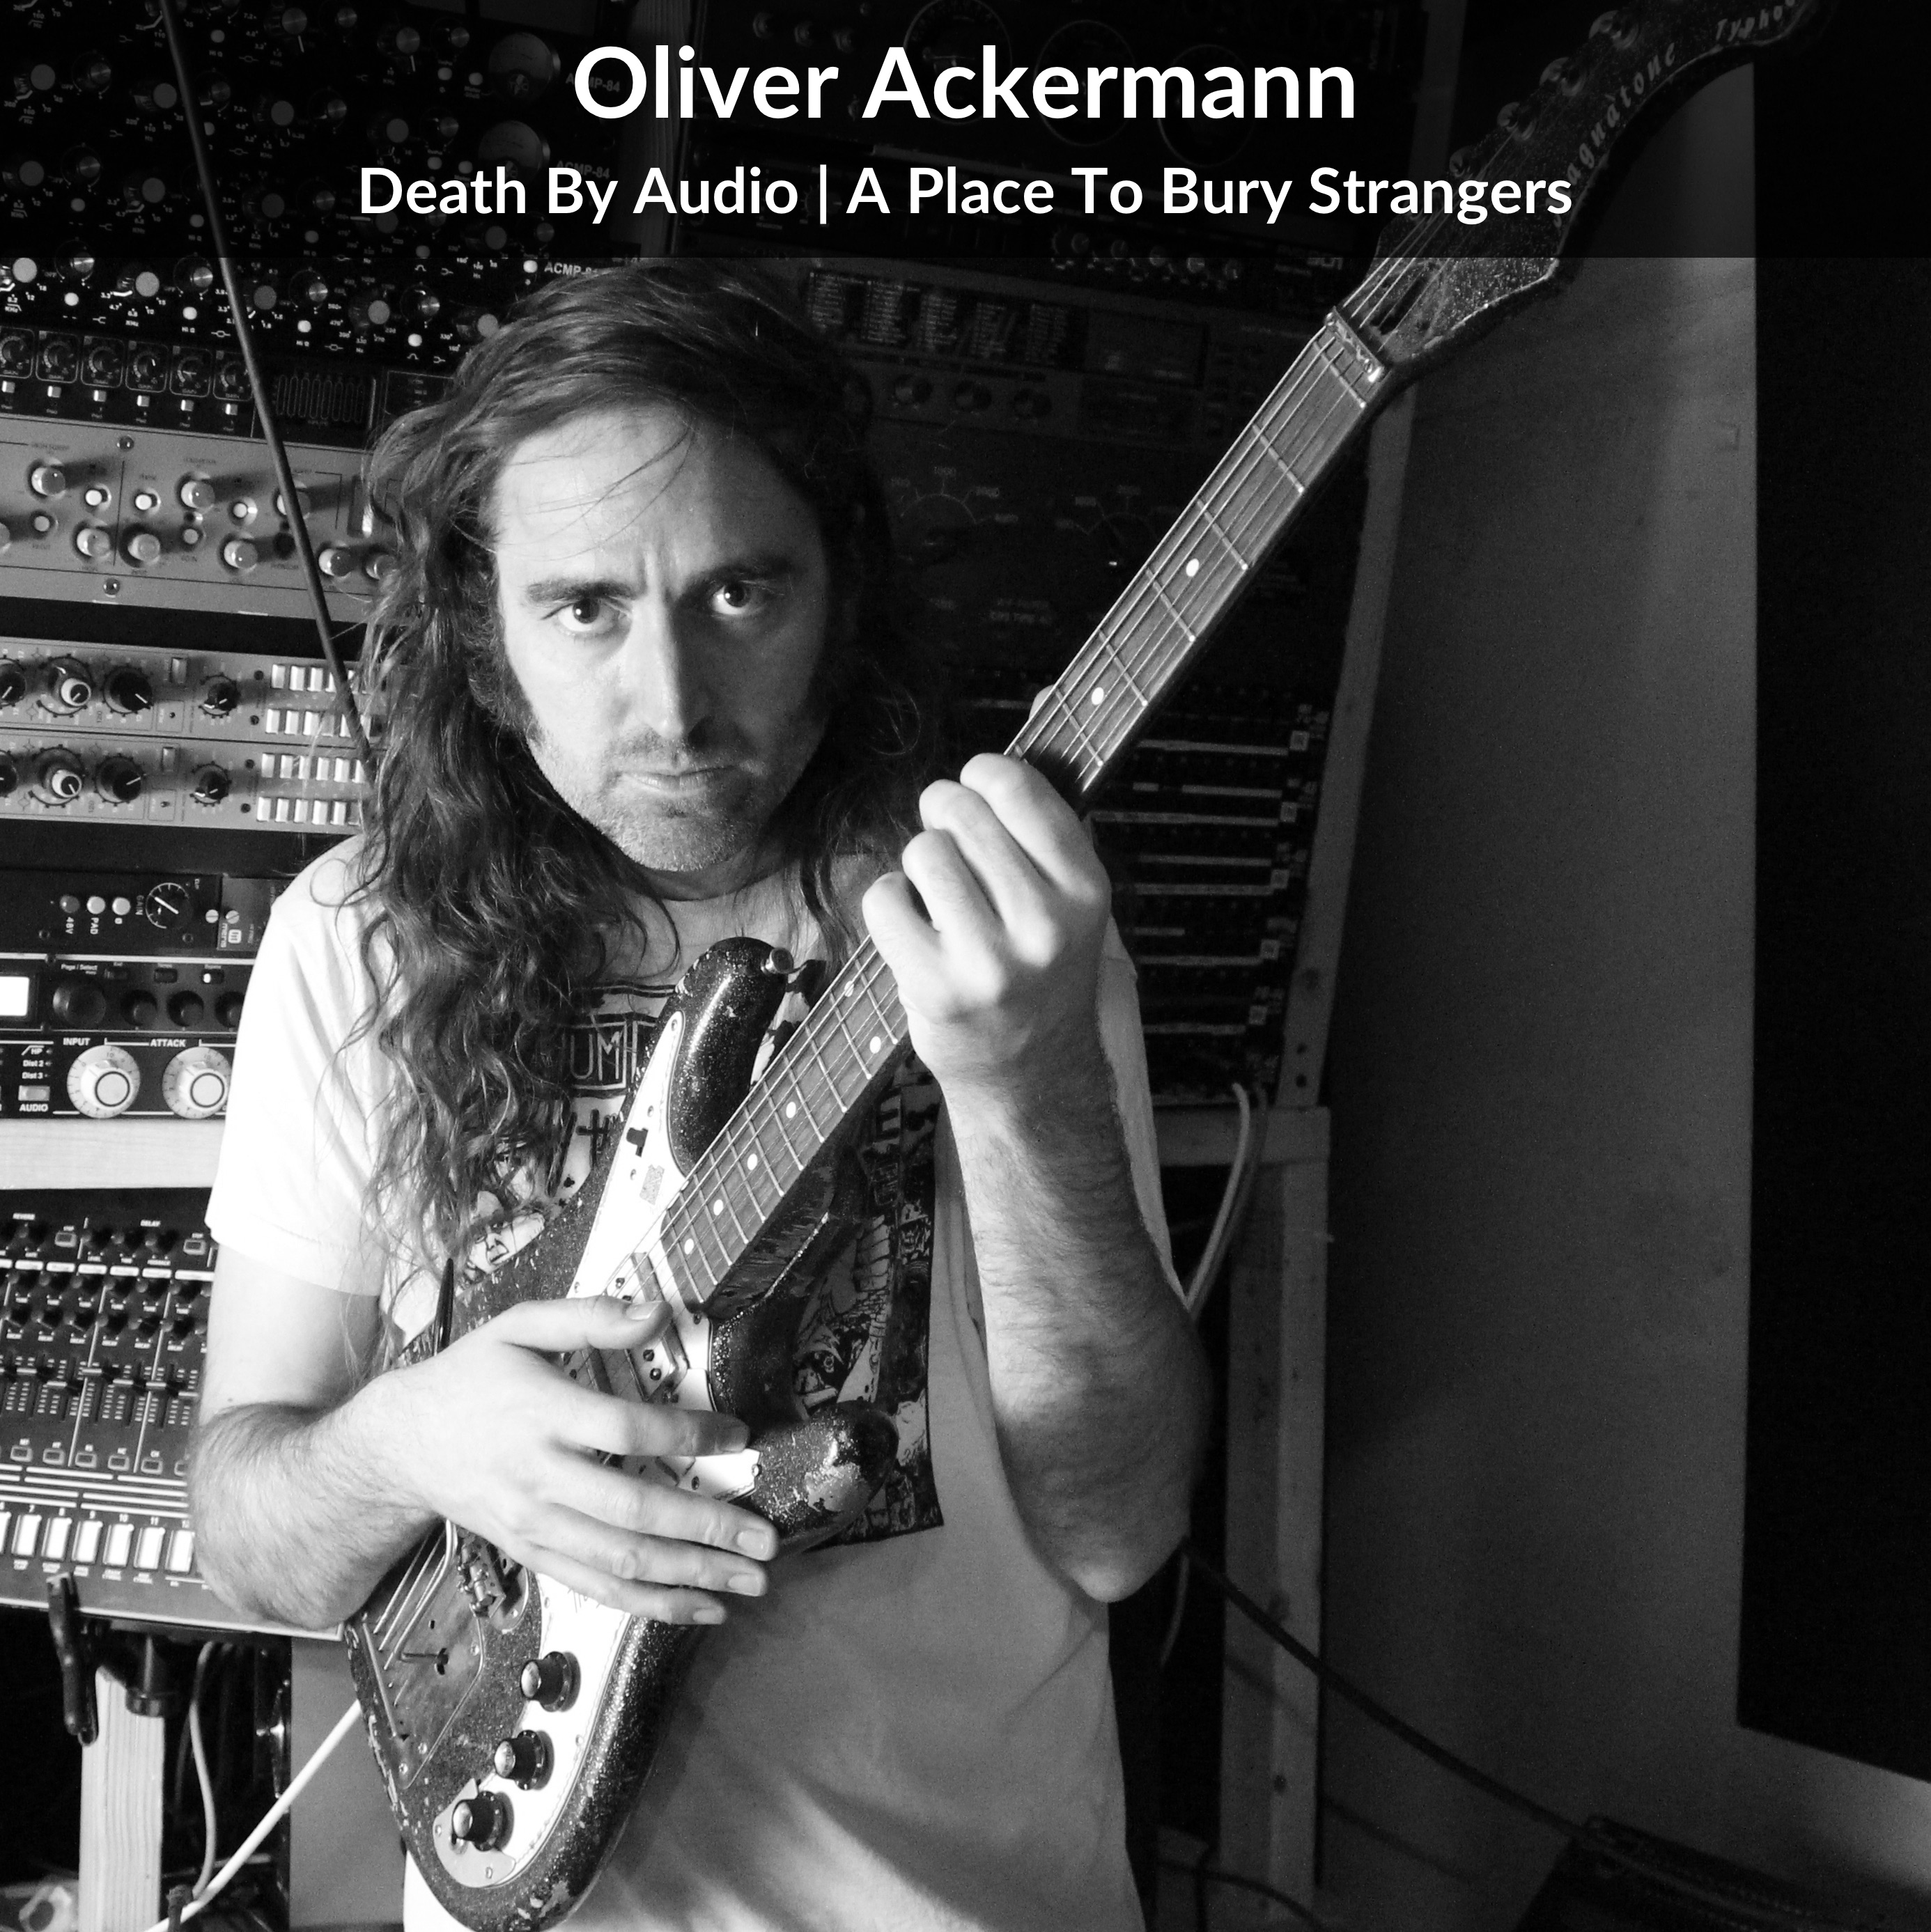 Oliver Ackermann from Death By Audio